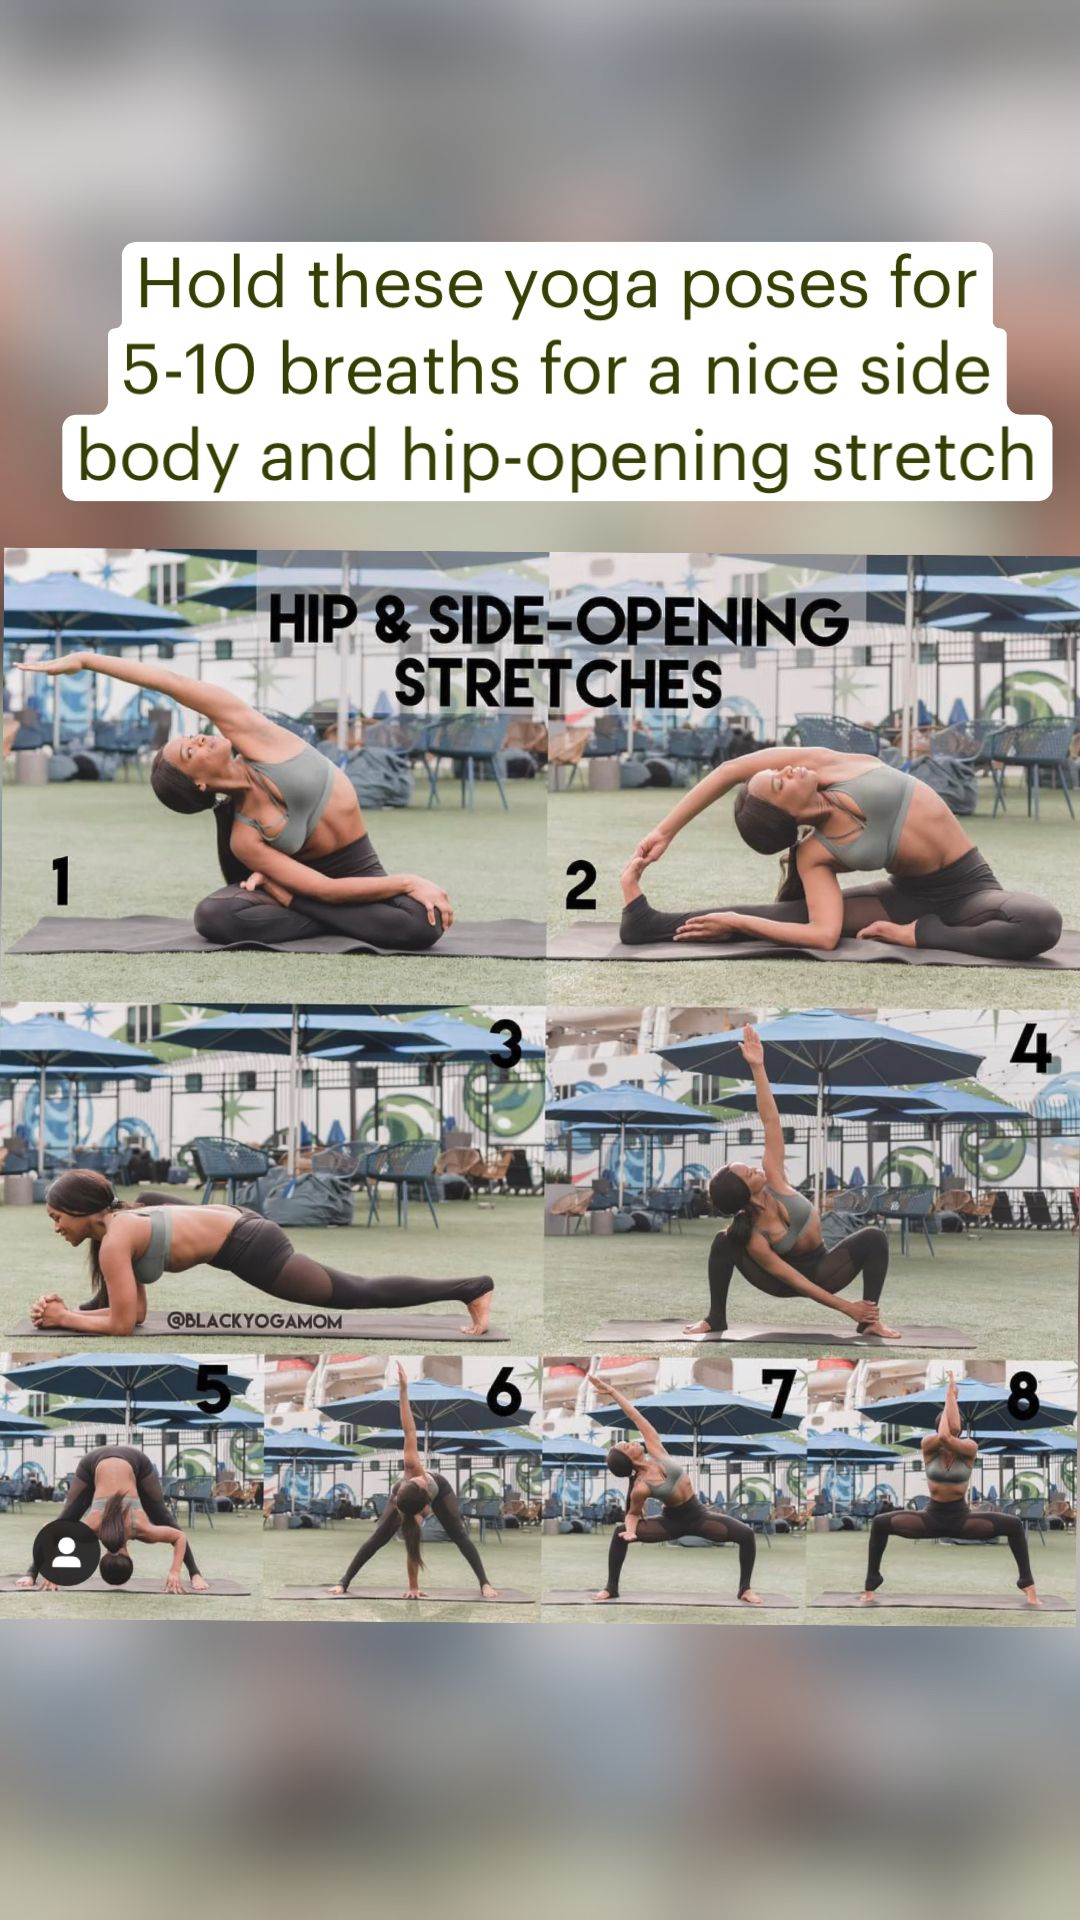 Hold these yoga poses for 5-10 breaths for a nice side body and hip-opening stretch